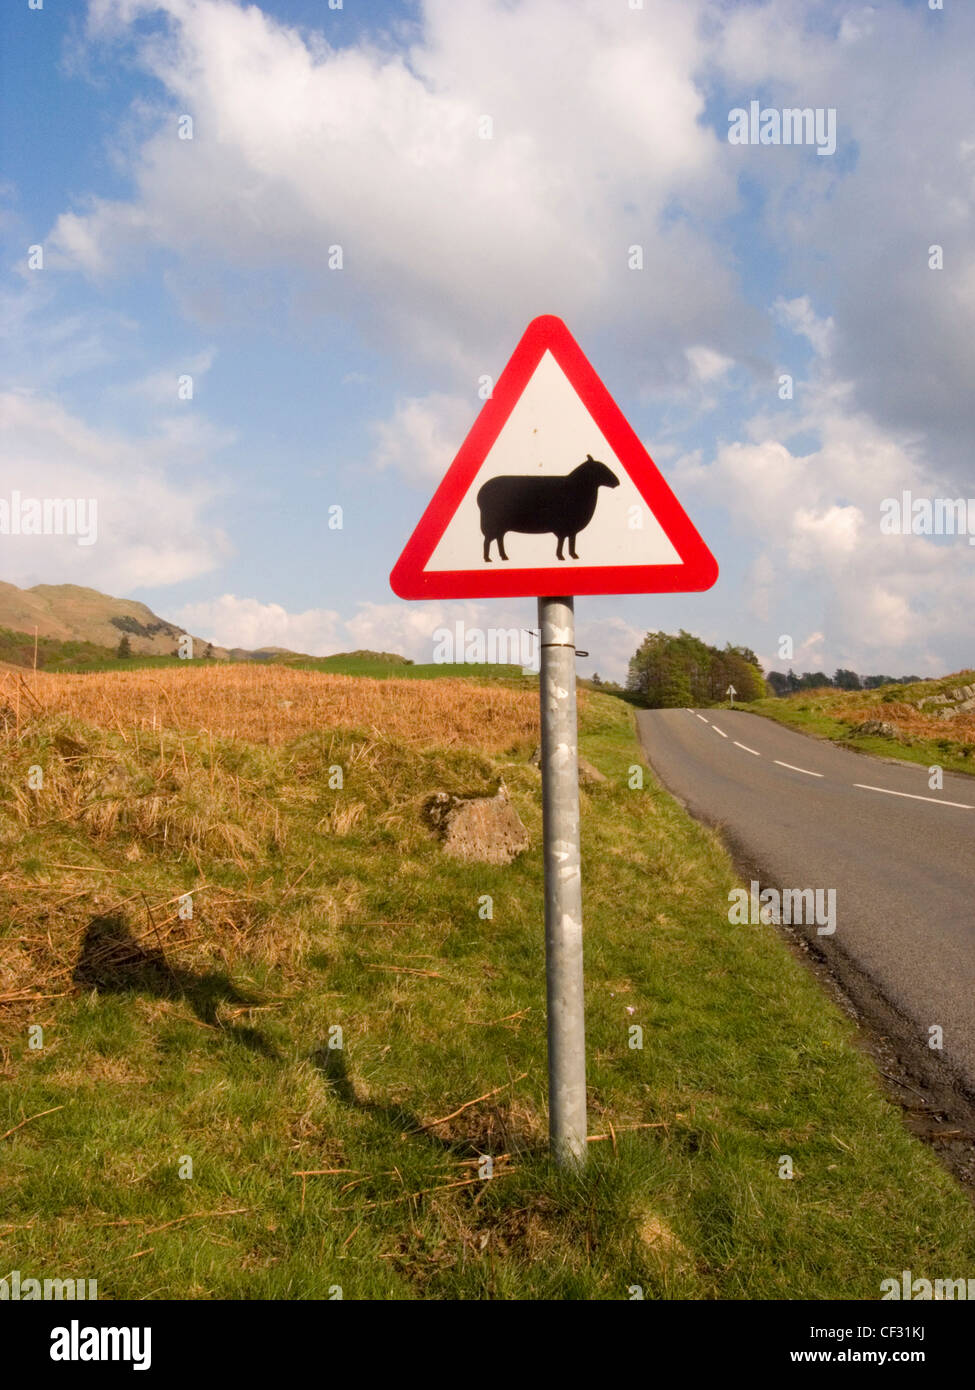 A red triangular warning sign by the side of a road advising that sheep may be in the road. - Stock Image